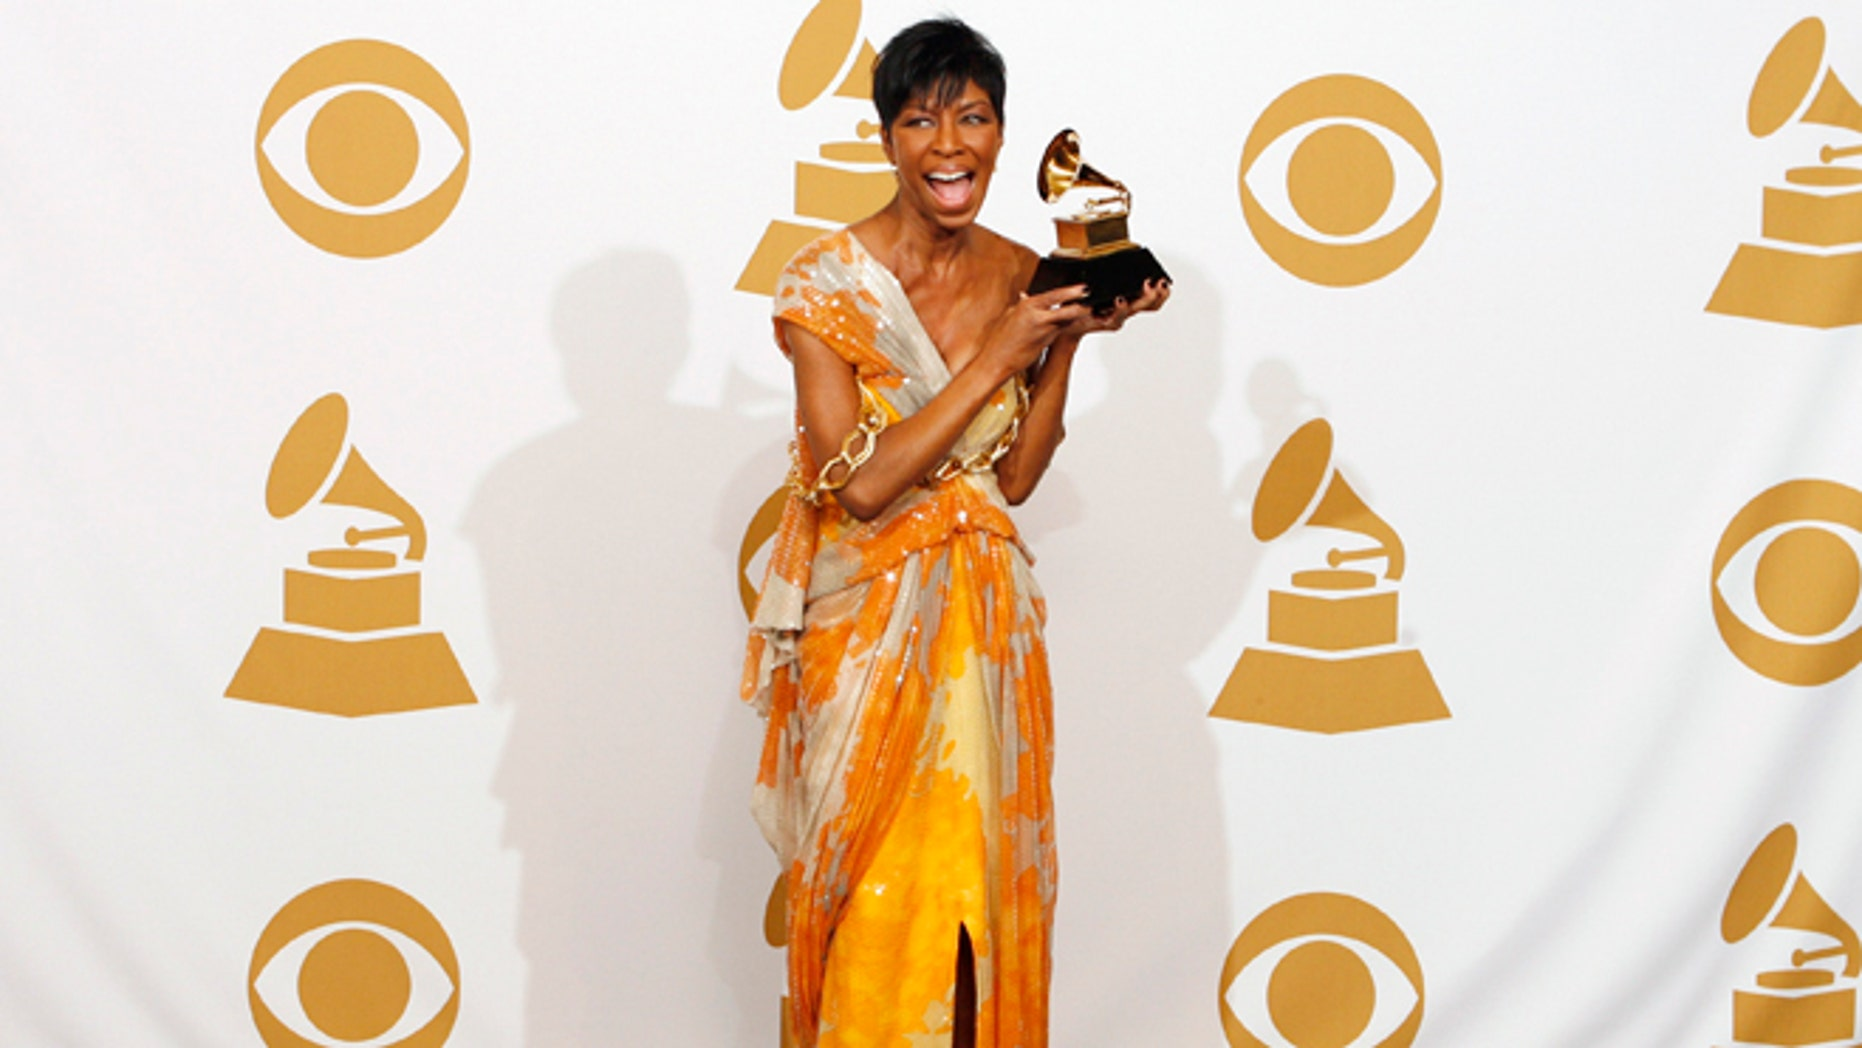 February 8, 209. Natalie Cole at the 51st annual Grammy Awards in Los Angeles.